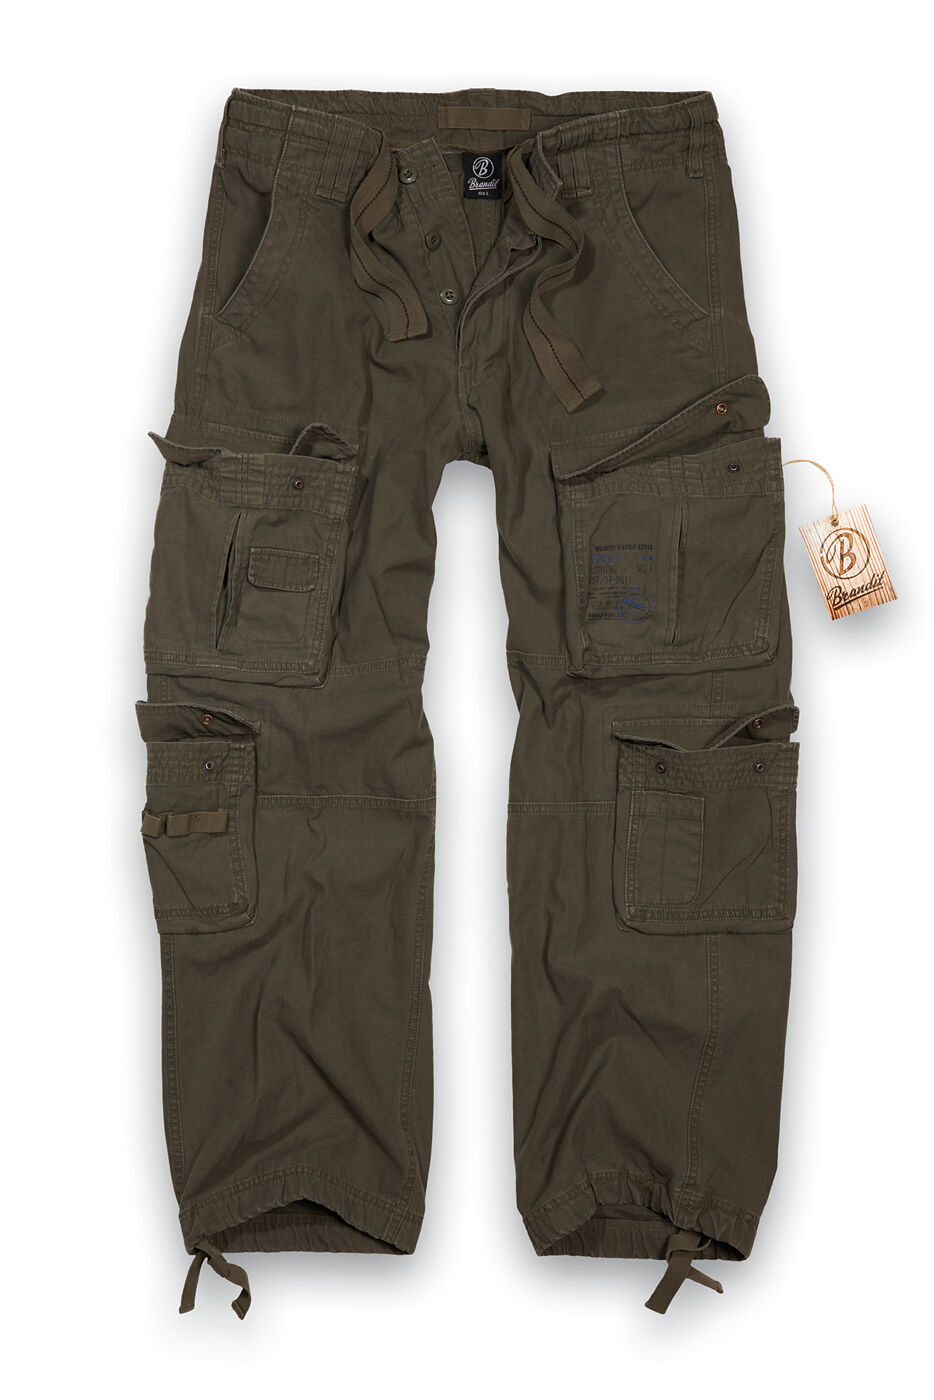 BRANDIT PURE VINTAGE COMBAT TROUSERS  Herren LARGE SIZE CARGO PANTS WORKWEAR  OLIVE